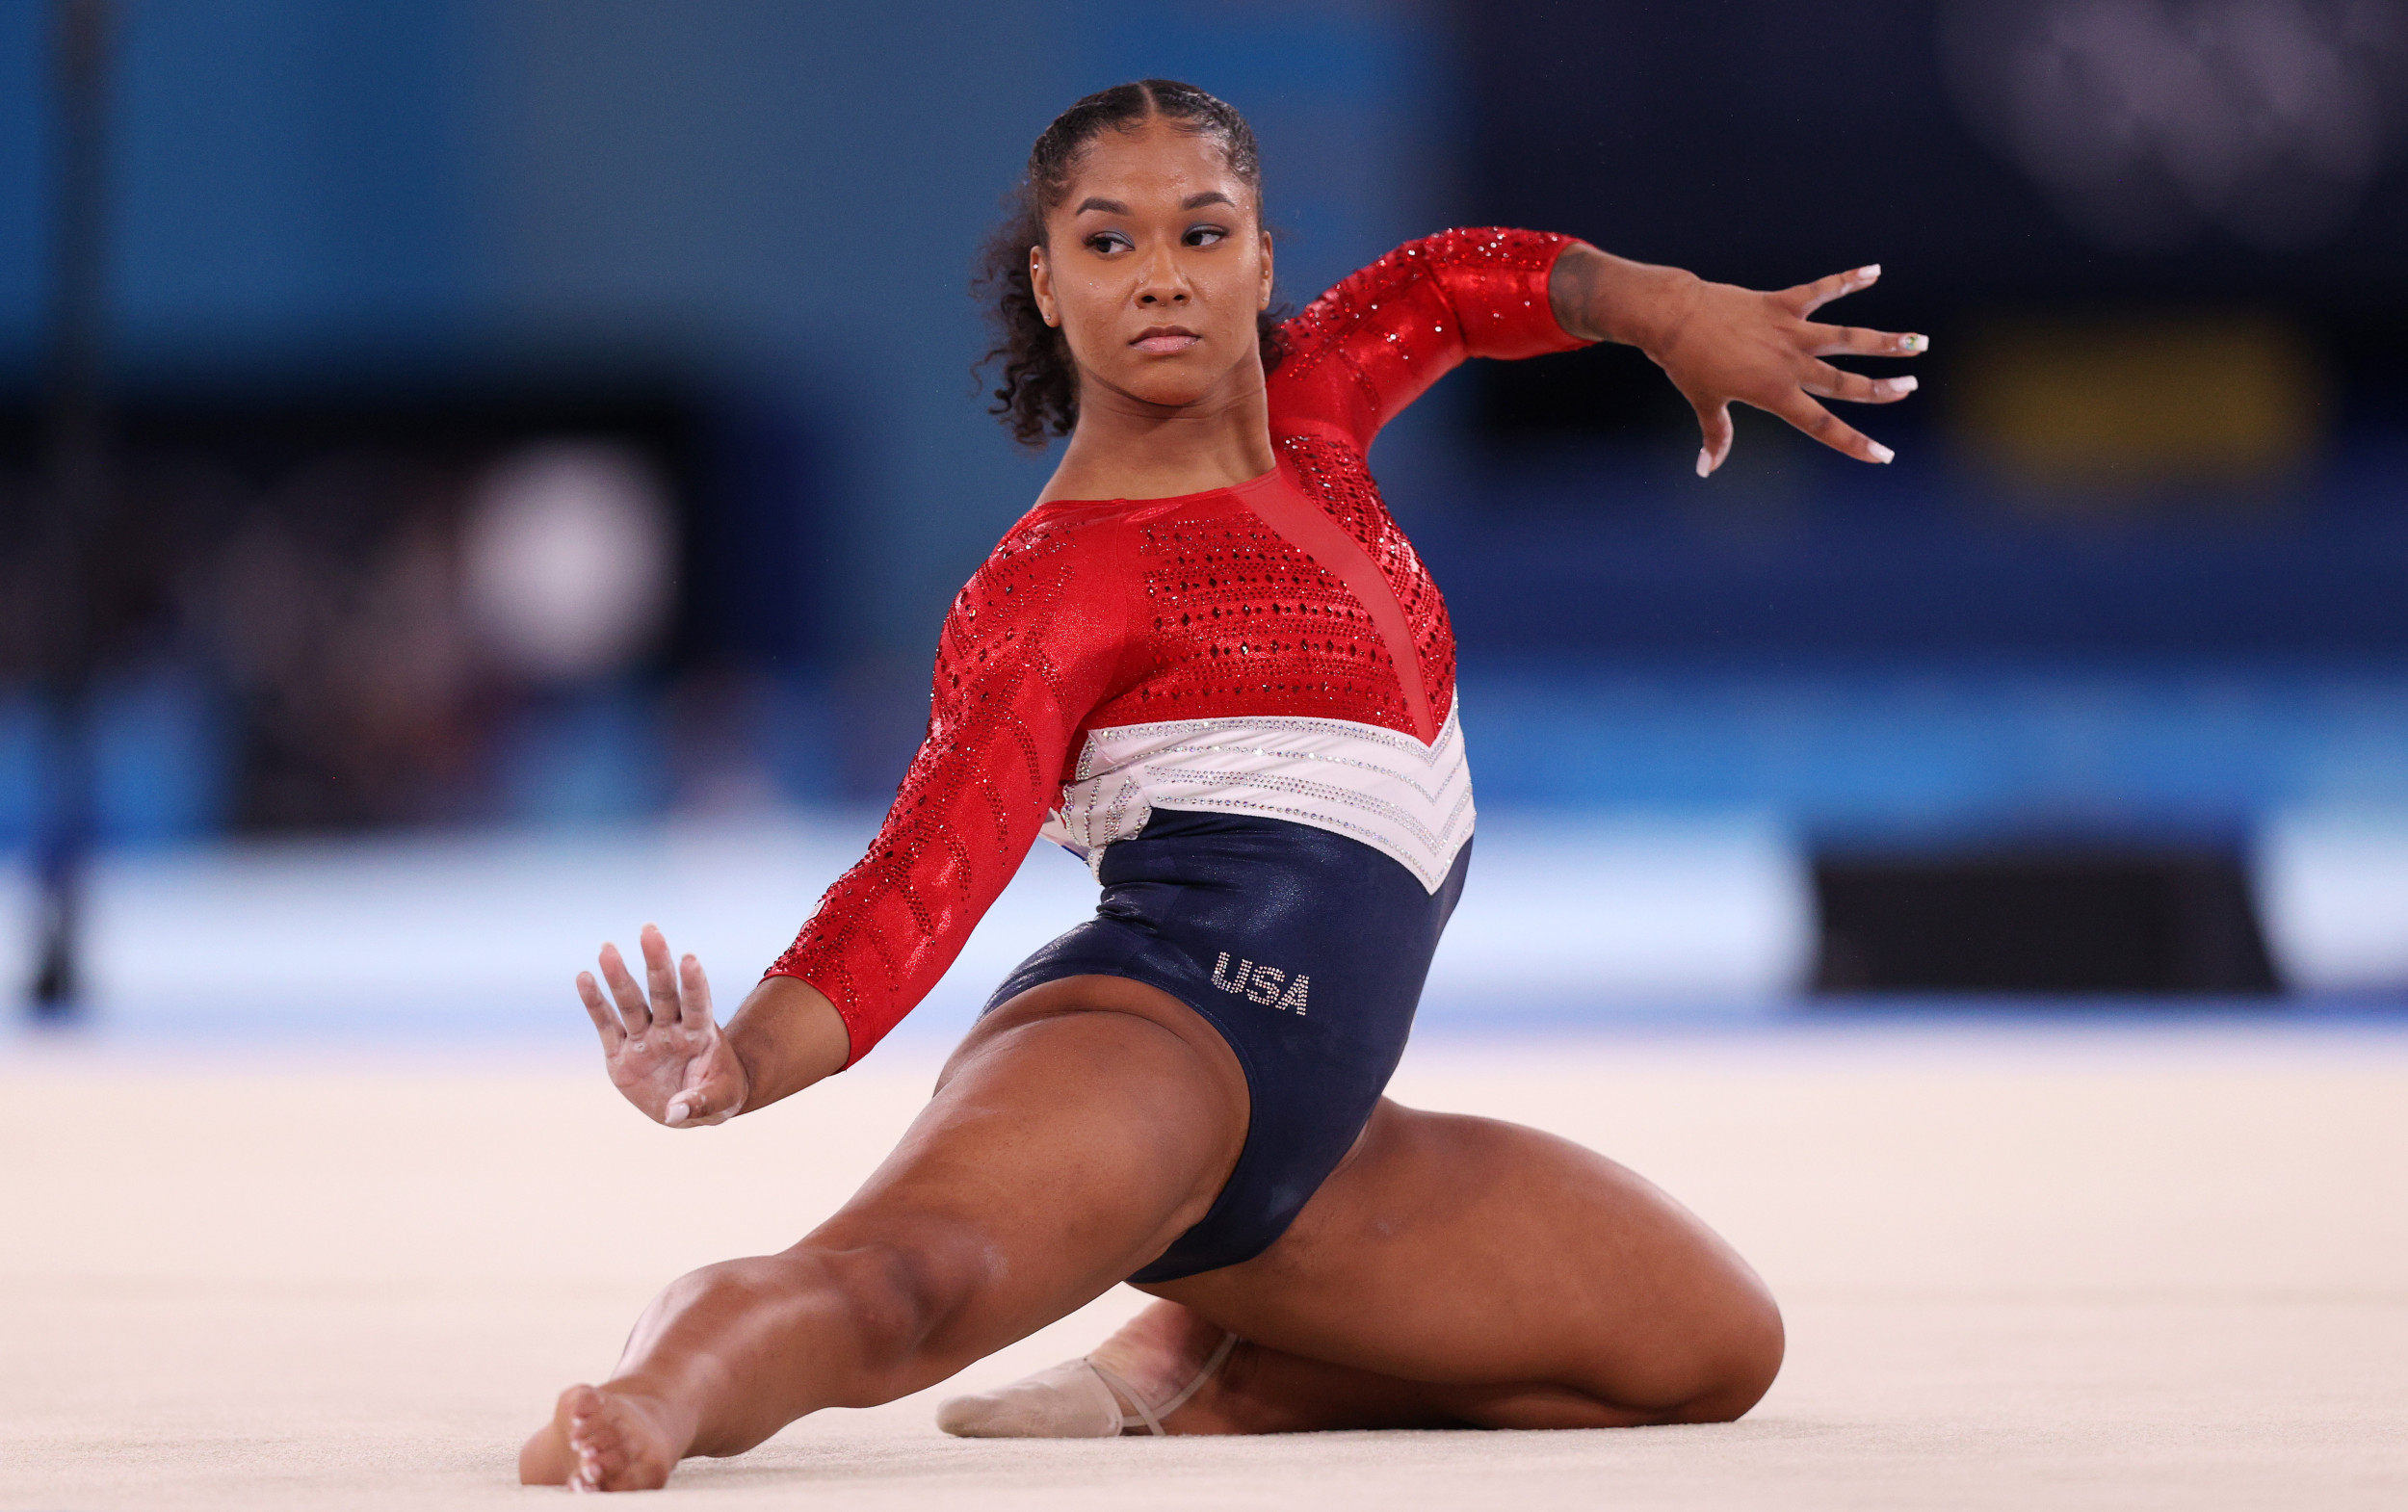 Olympics Fans Slam NBC for Skipping Live Coverage of Jordan Chiles Routine